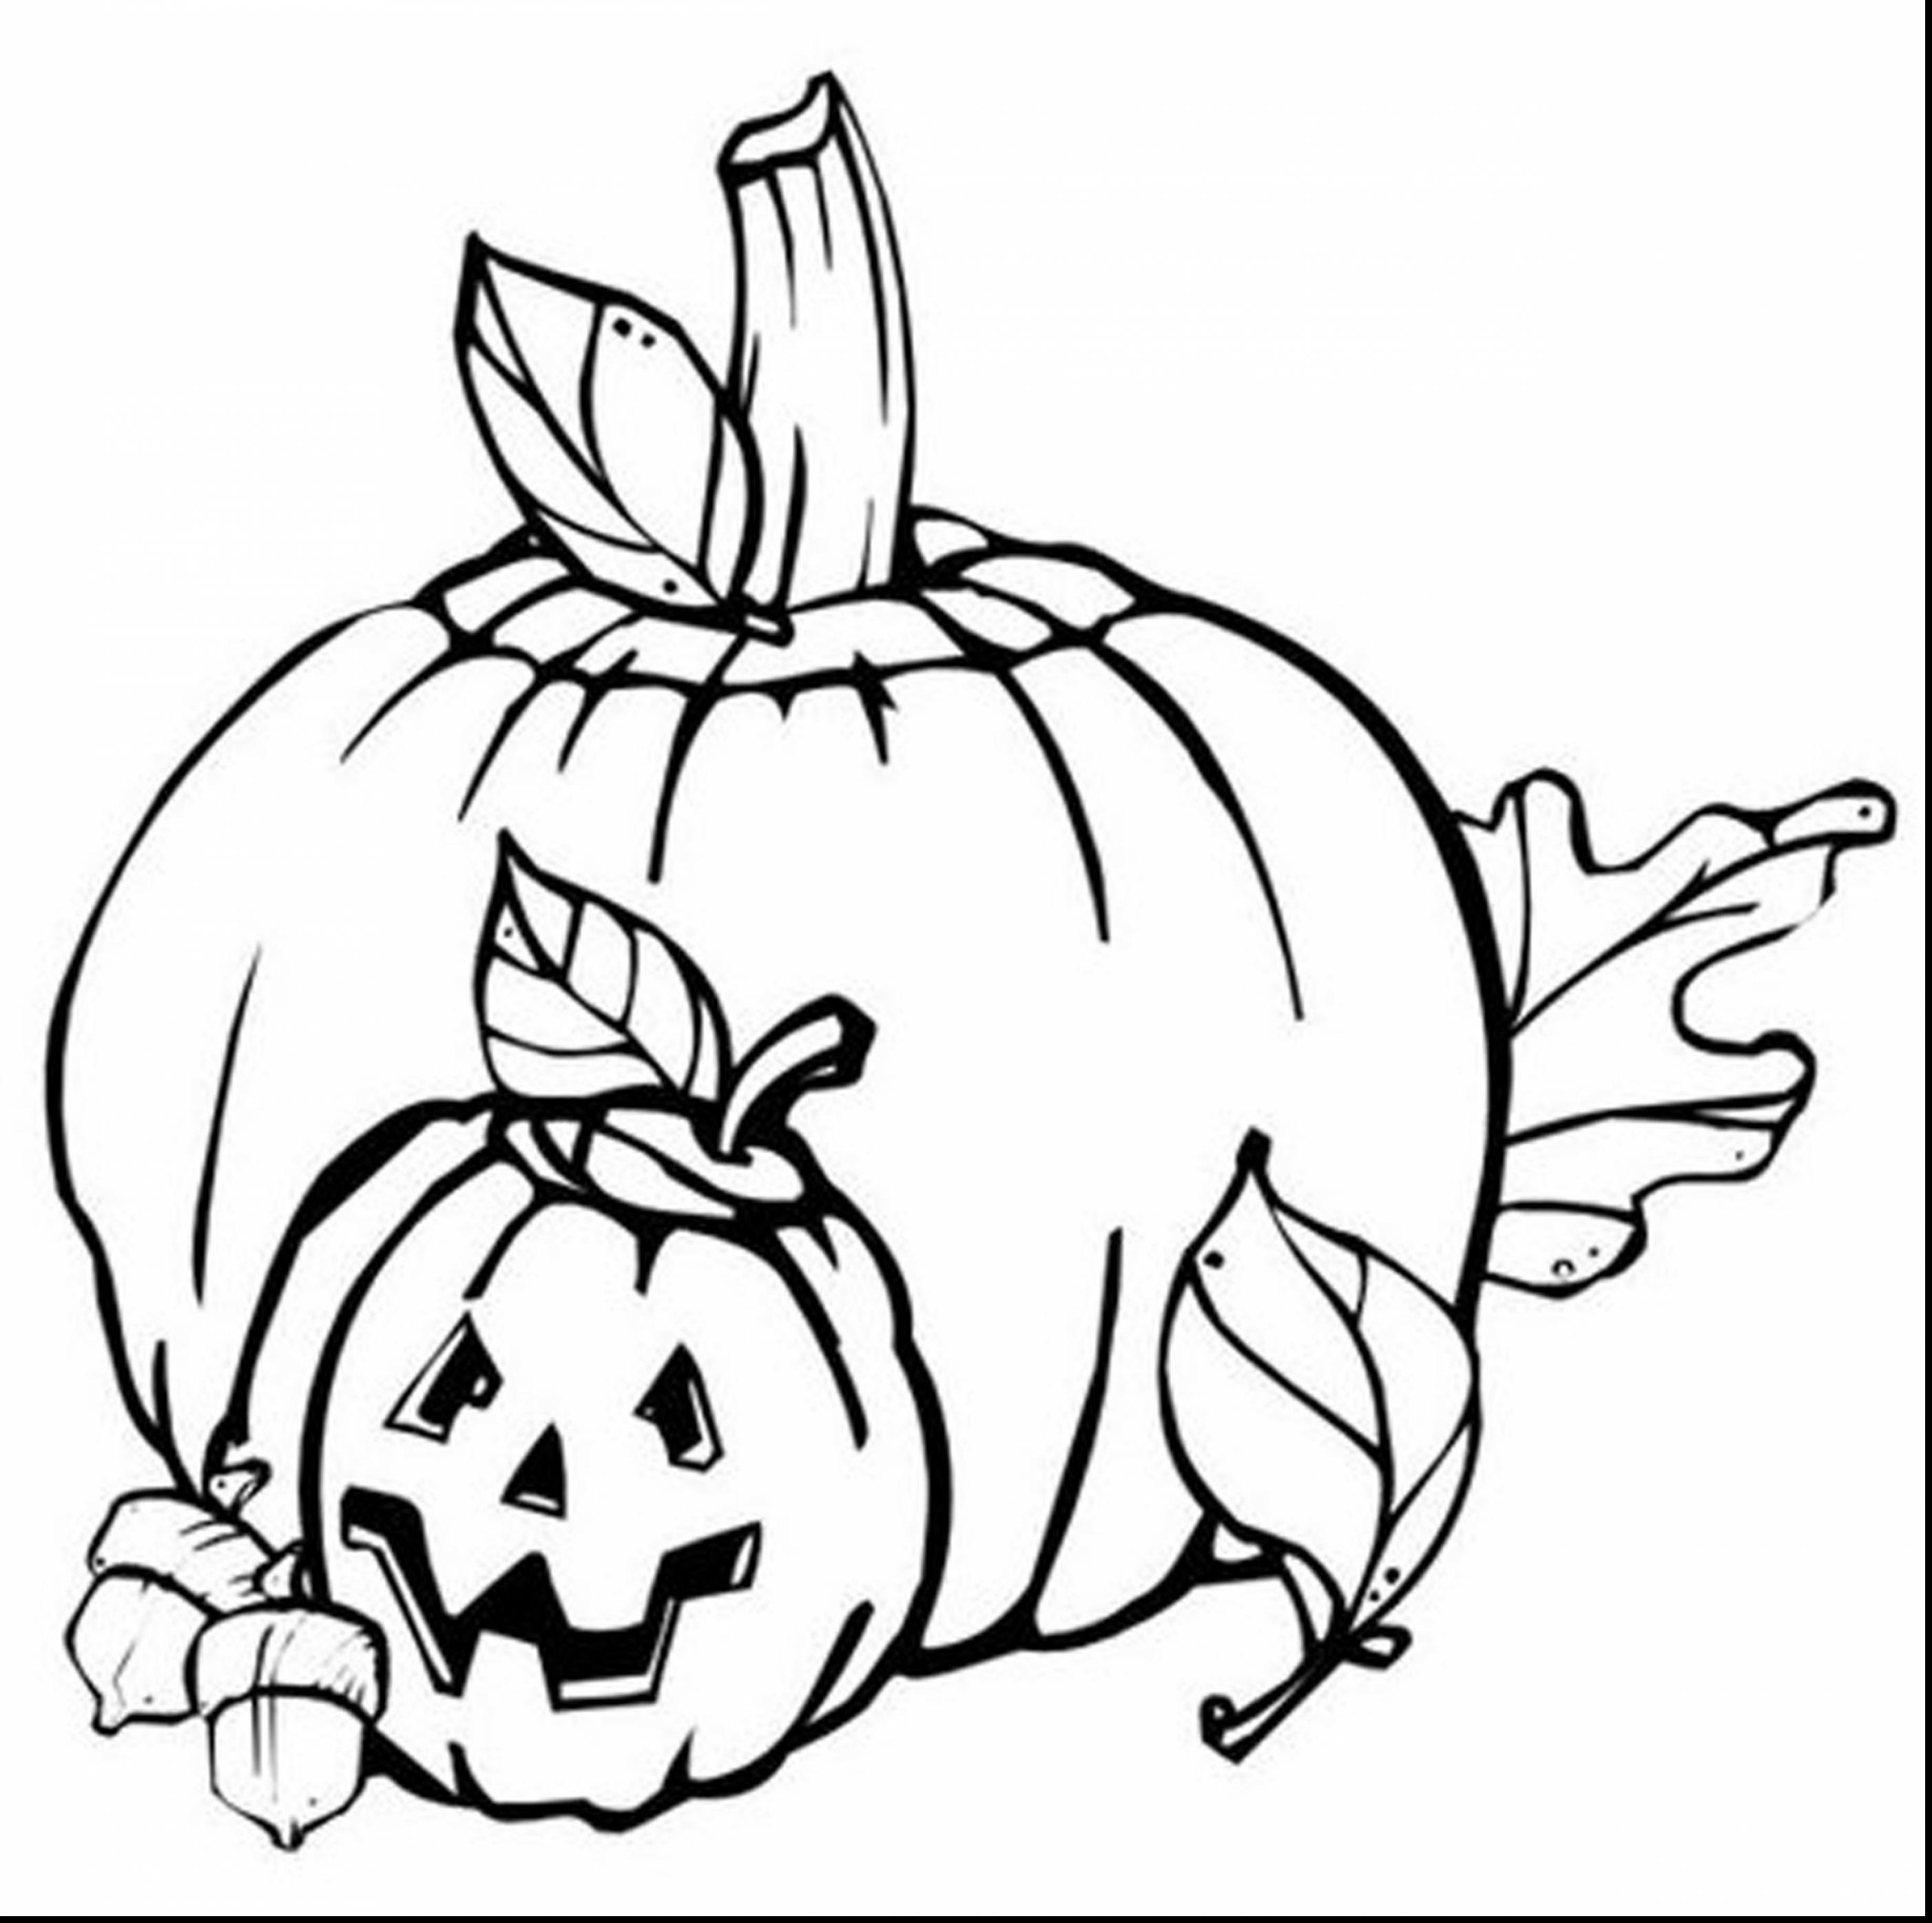 2805x2792 Special Fall Pumpkin Coloring Pages For Kids And Funny Squirrel